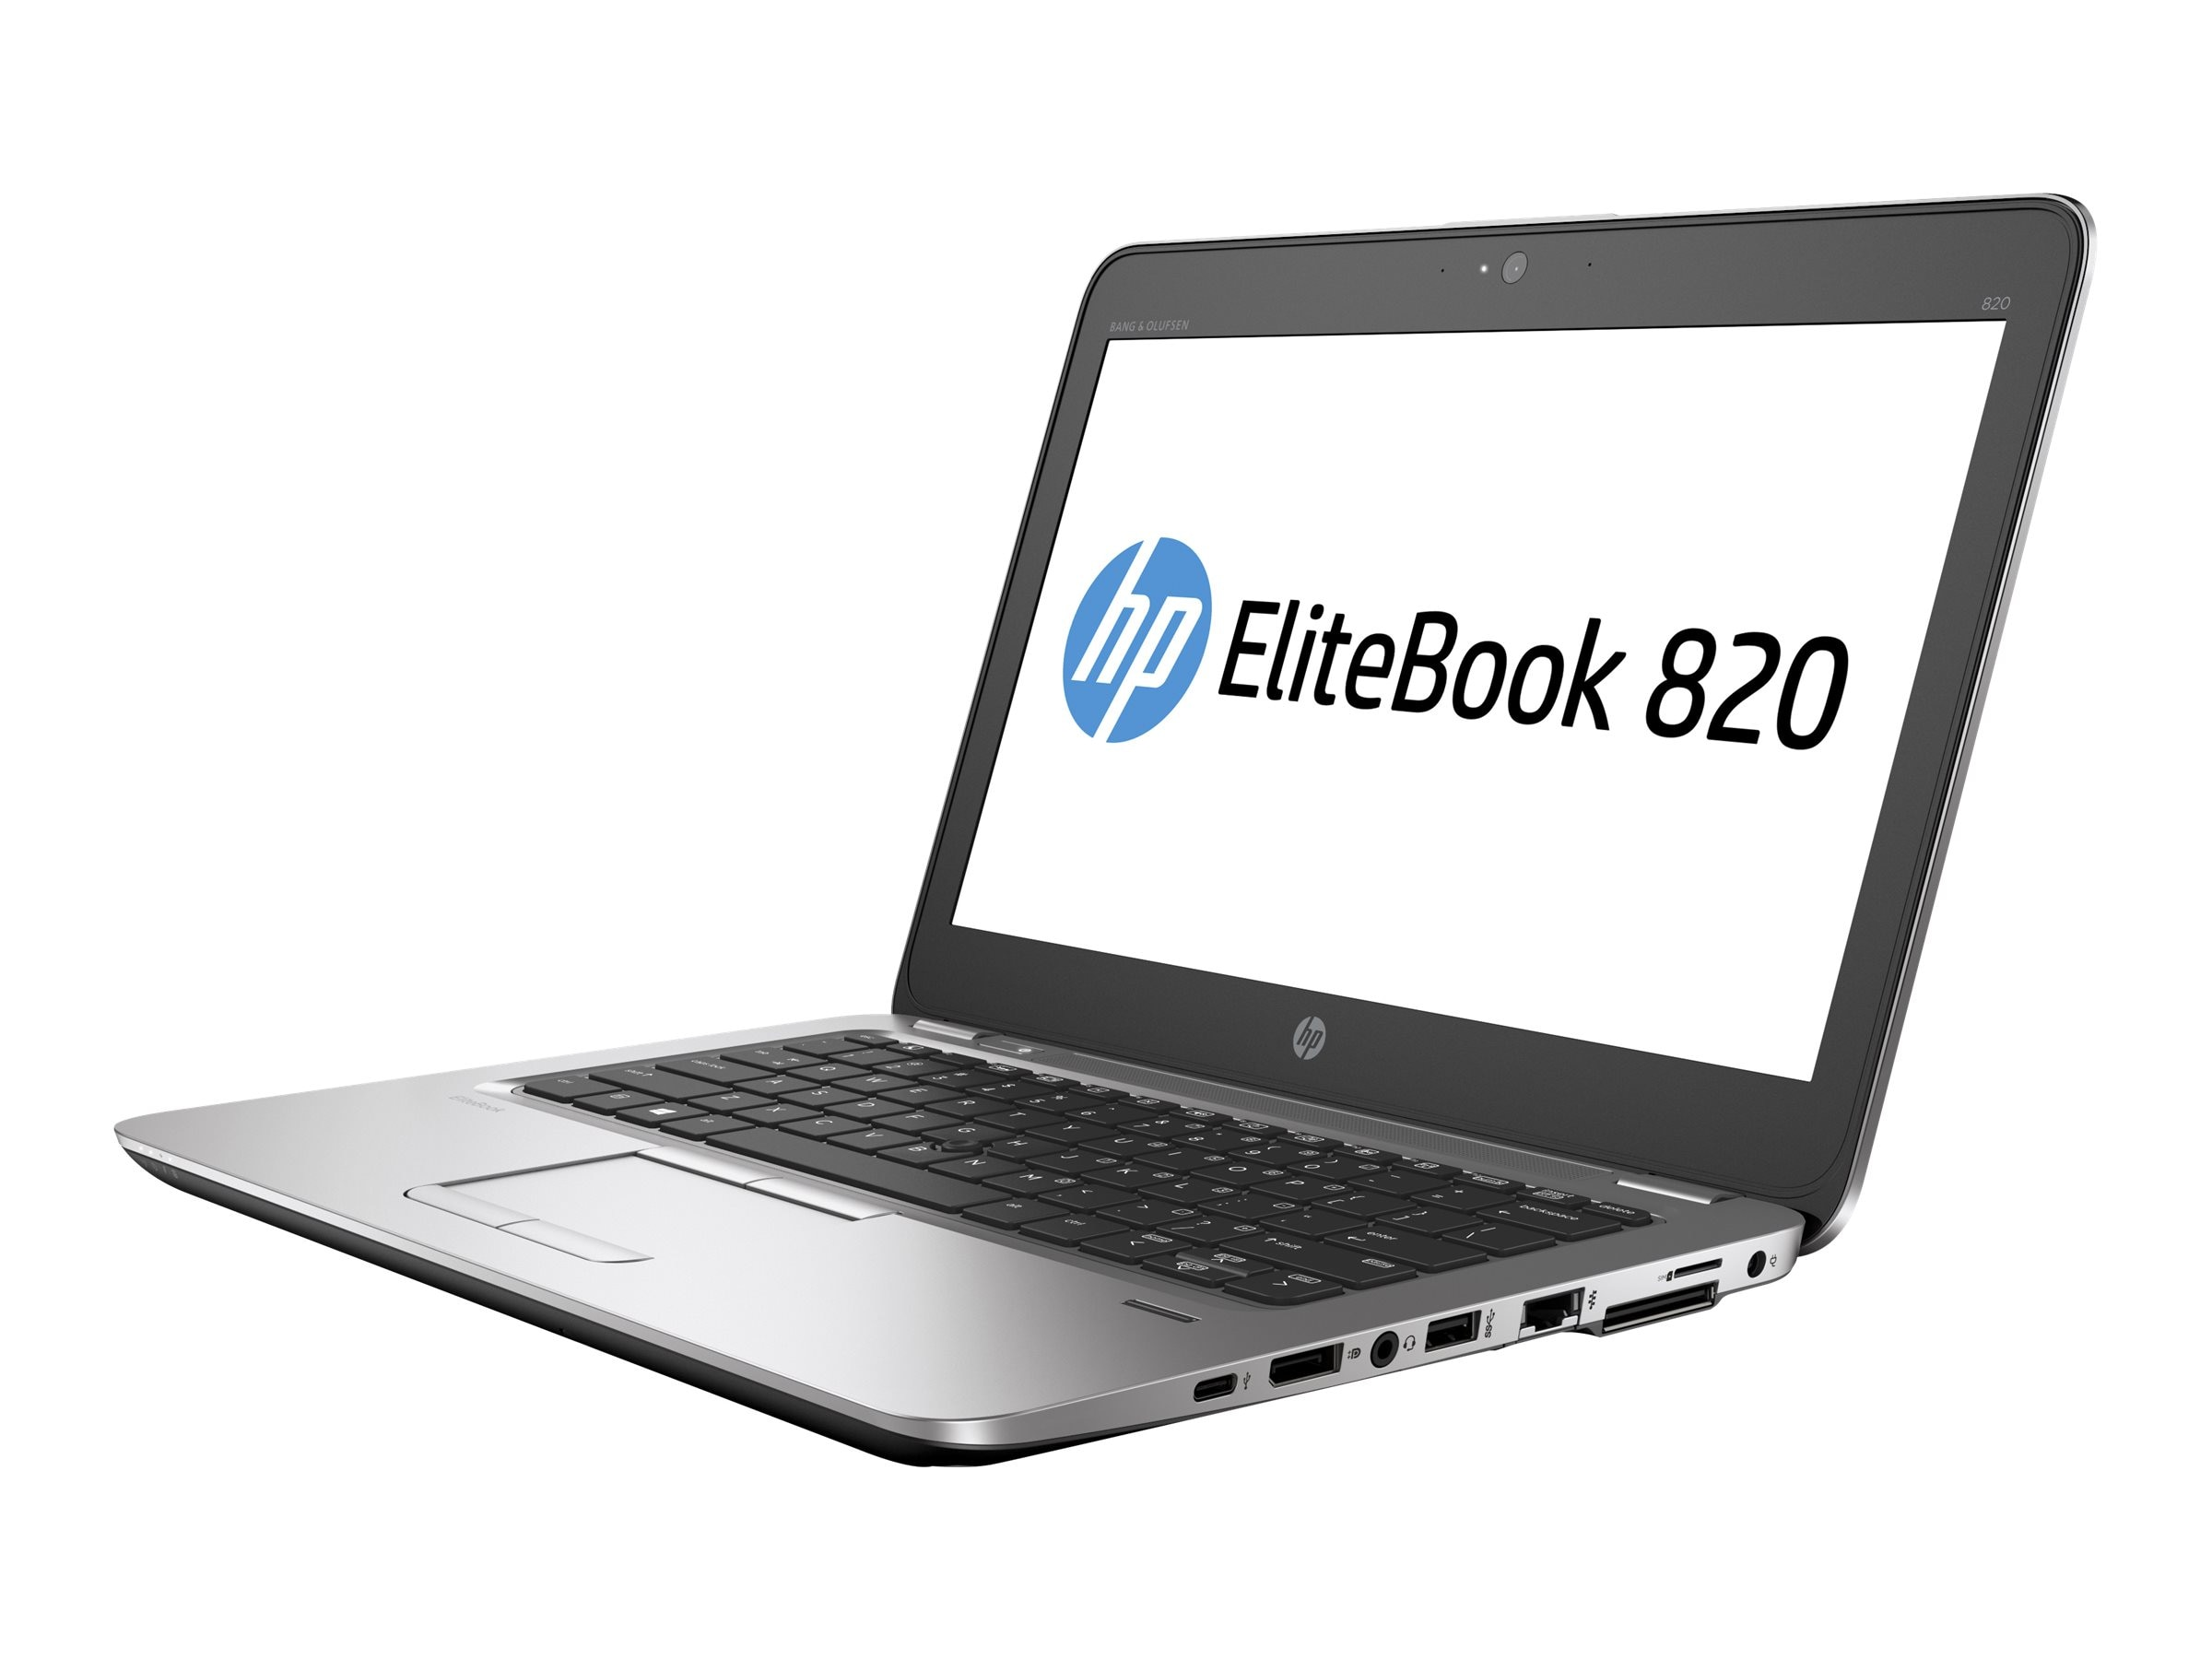 HP EliteBook 820 G3 2.4GHz Core i5 12.5in display